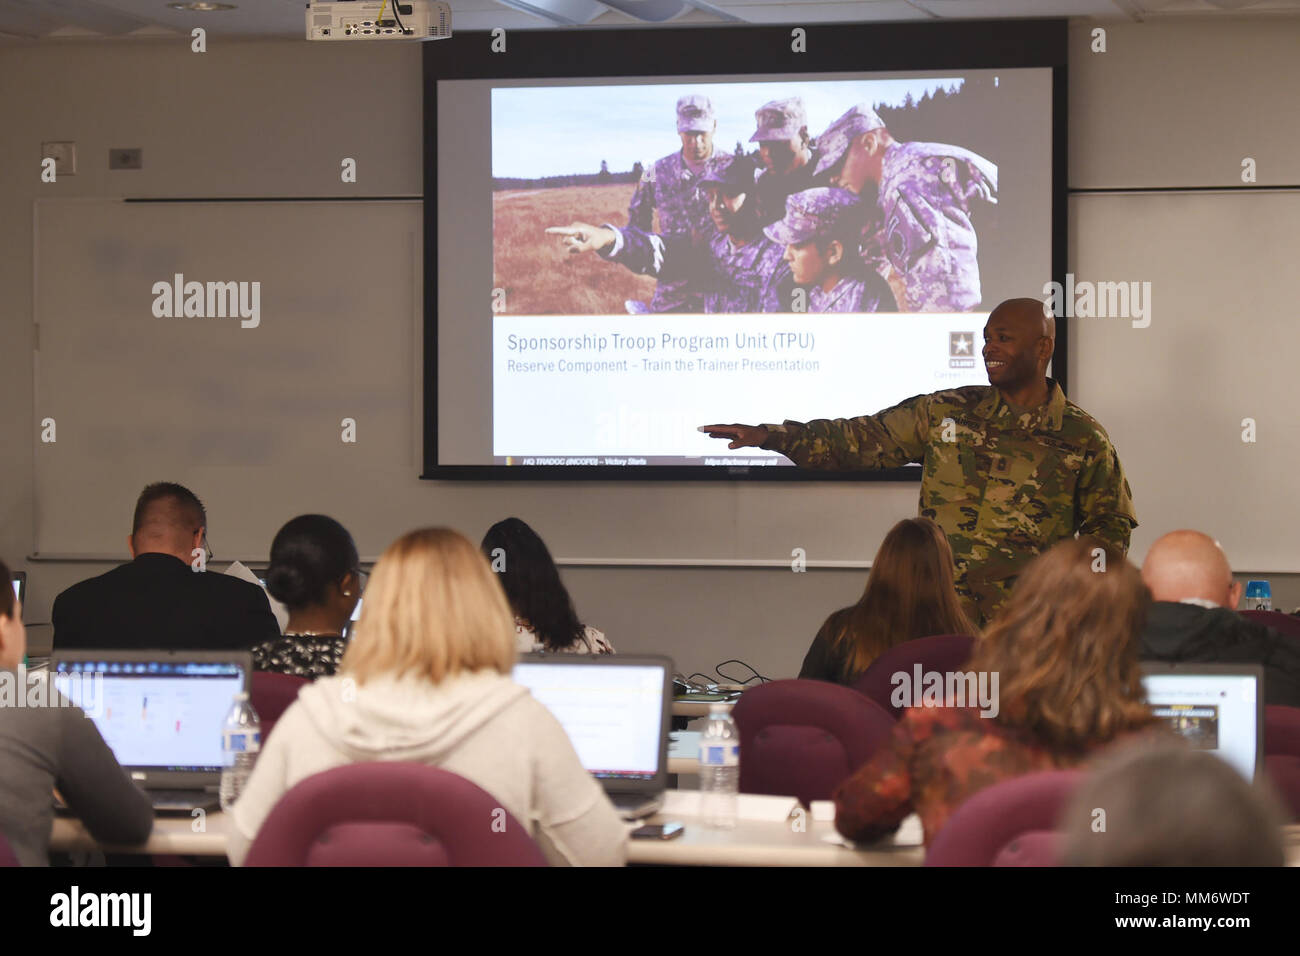 Master Sgt. Laroy Warren, G1/Personnel section noncommissioned officer in charge, briefs the 85th Support Command's staff administrative specialists on the Troop Program Unit Soldier sponsorship program during the command's Human Resources workshop at their headquarters near Chicago, September 13, 2017. The purpose of the workshop, held from September 11–15, was to sync policies, procedures, business practices, structure, and information to the command's SAS', located across the continental United States. The 85th SPT CMD, with more than 4,000 Soldiers assigned, supports more than 55 Army Rese - Stock Image